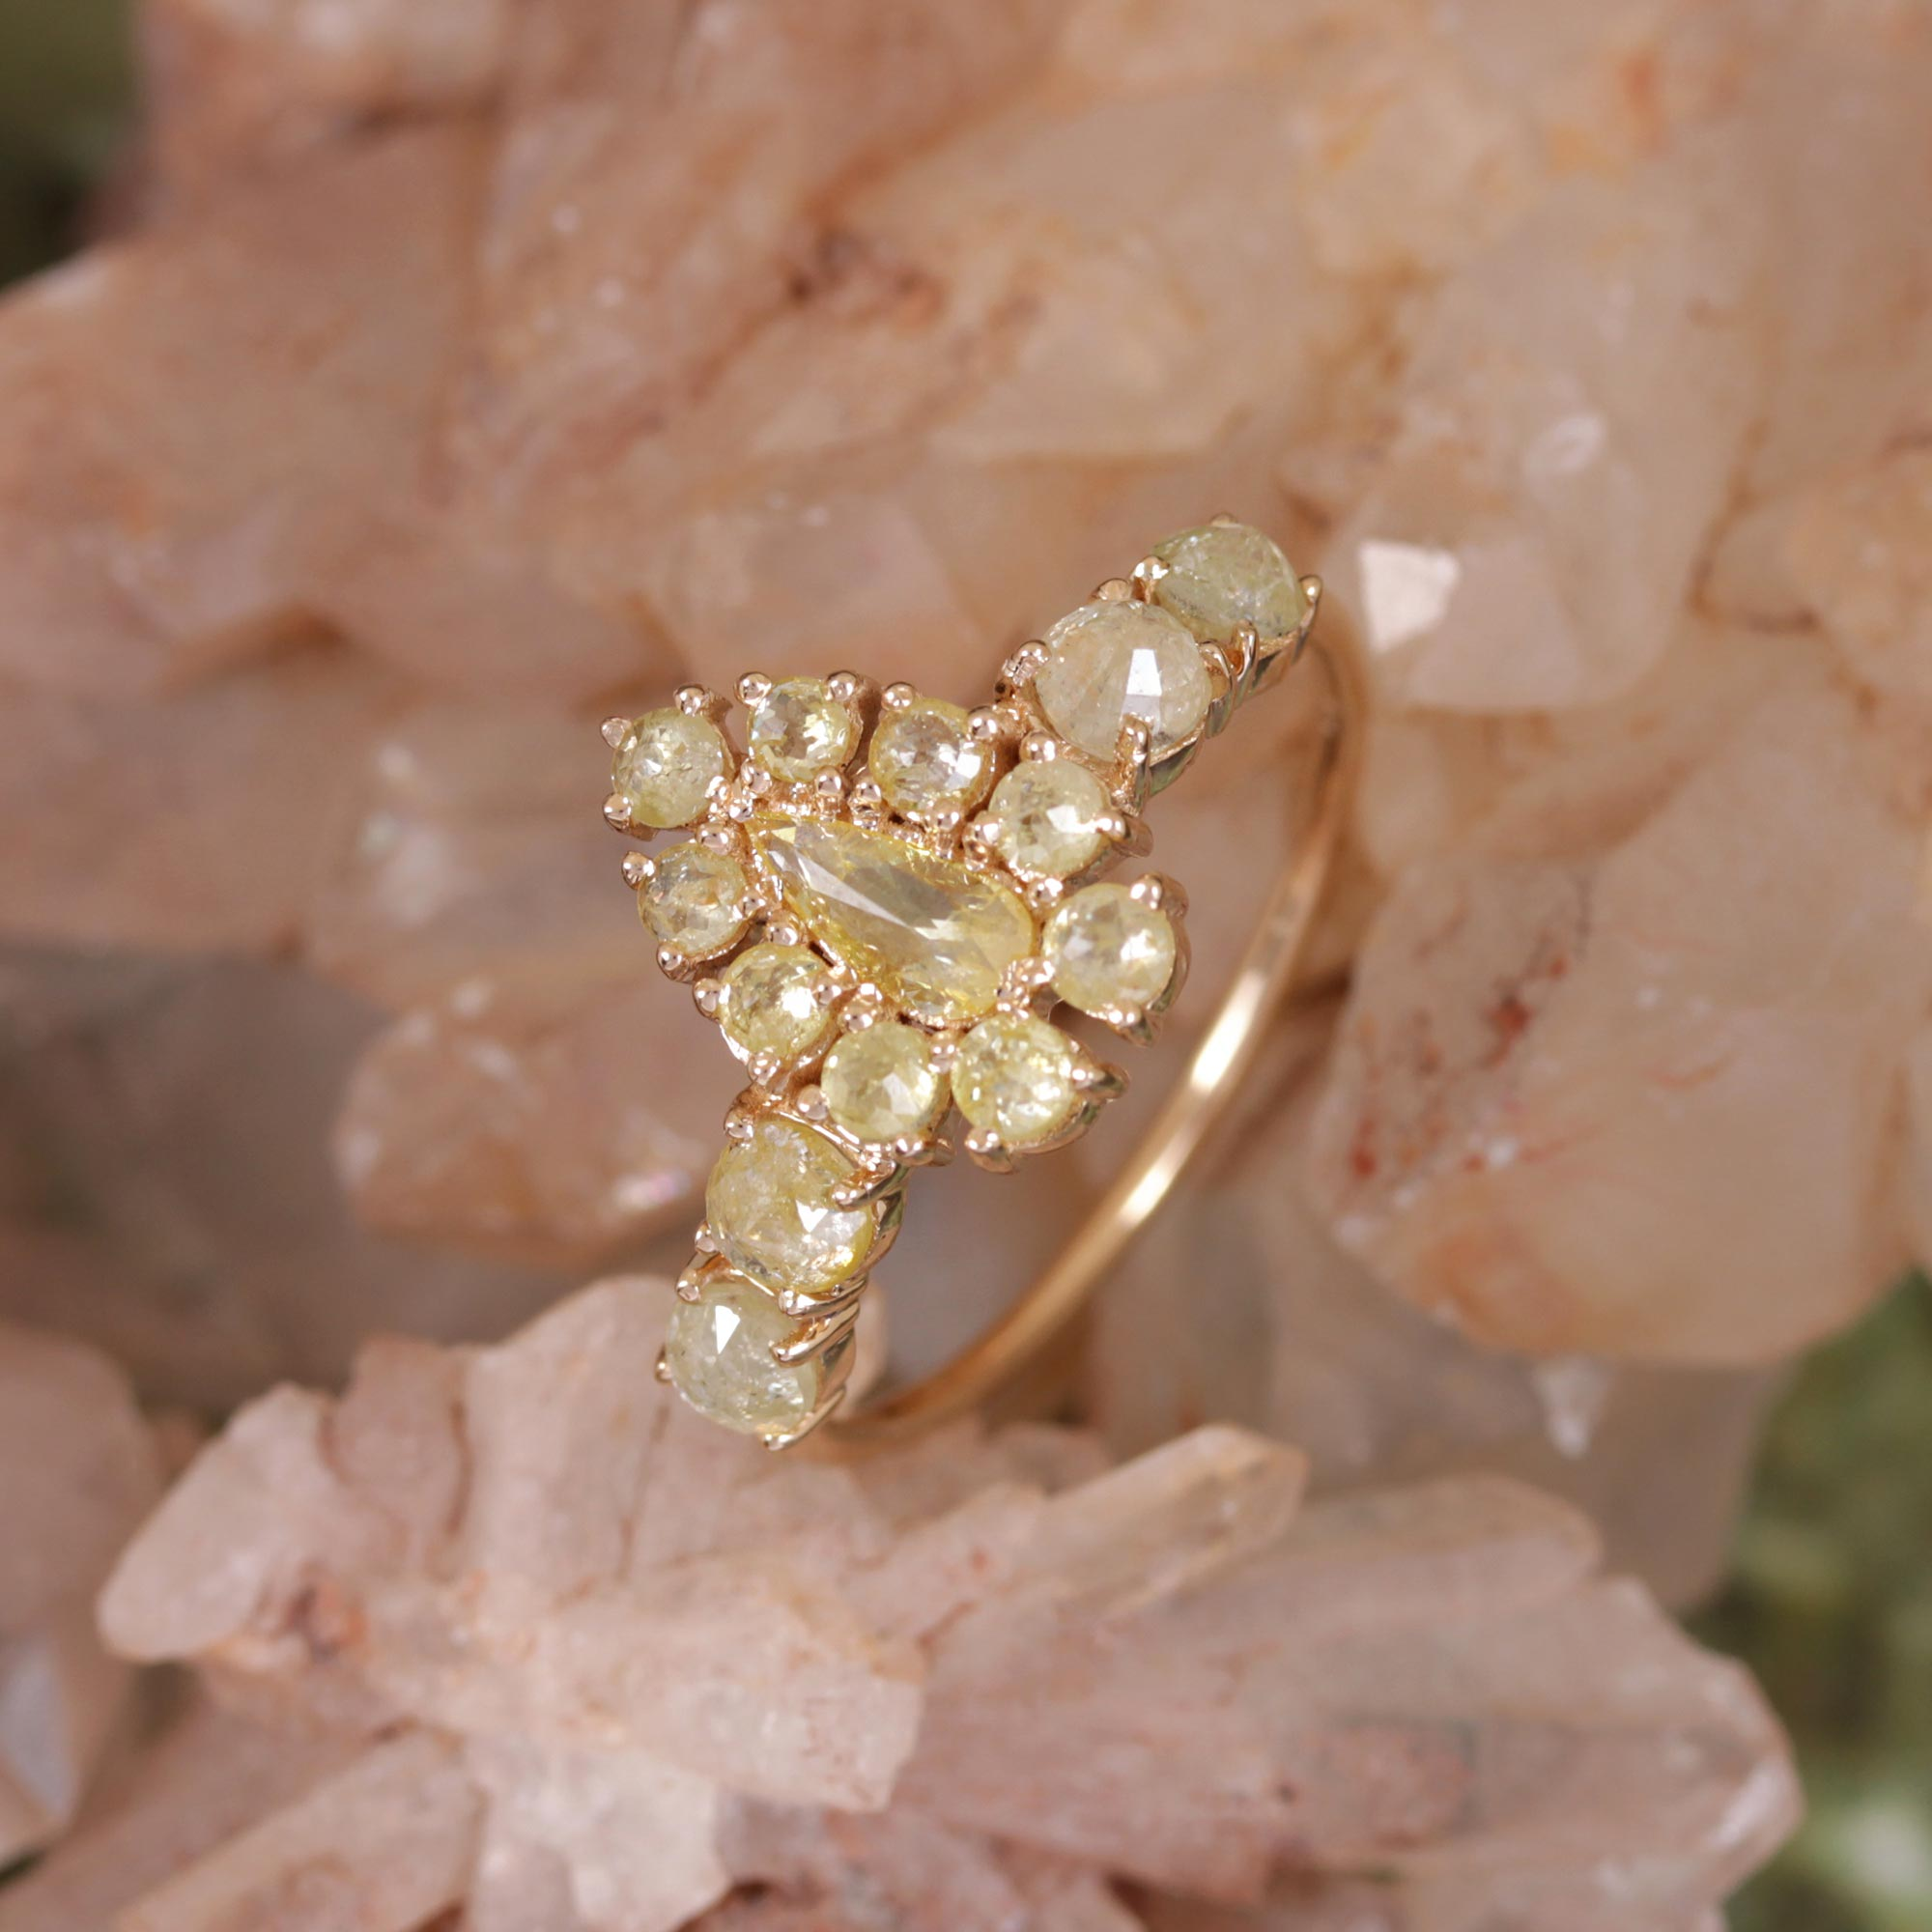 14K Solid Yellow Gold Natural Pave Diamond Ring Jewelry